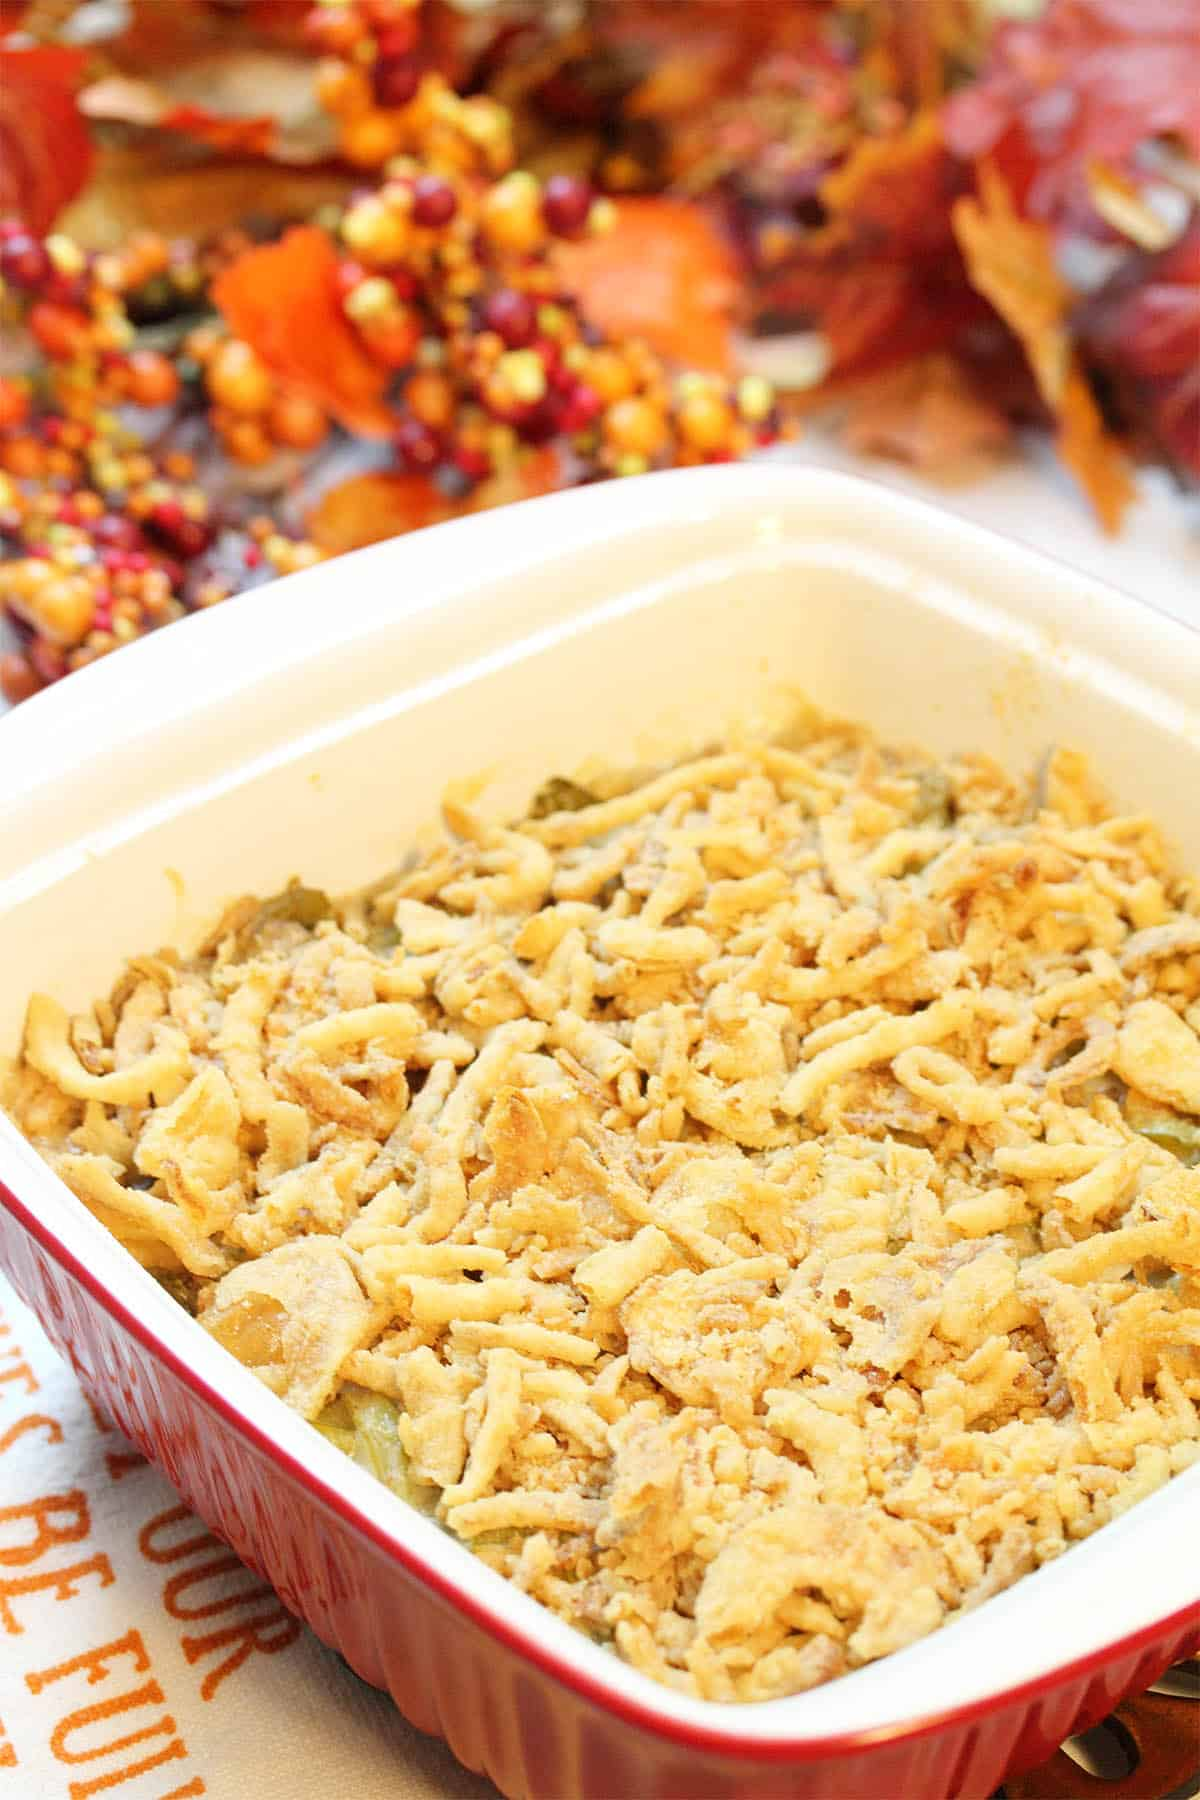 Baked creamy green bean casserole in front of fall berries and leaves.